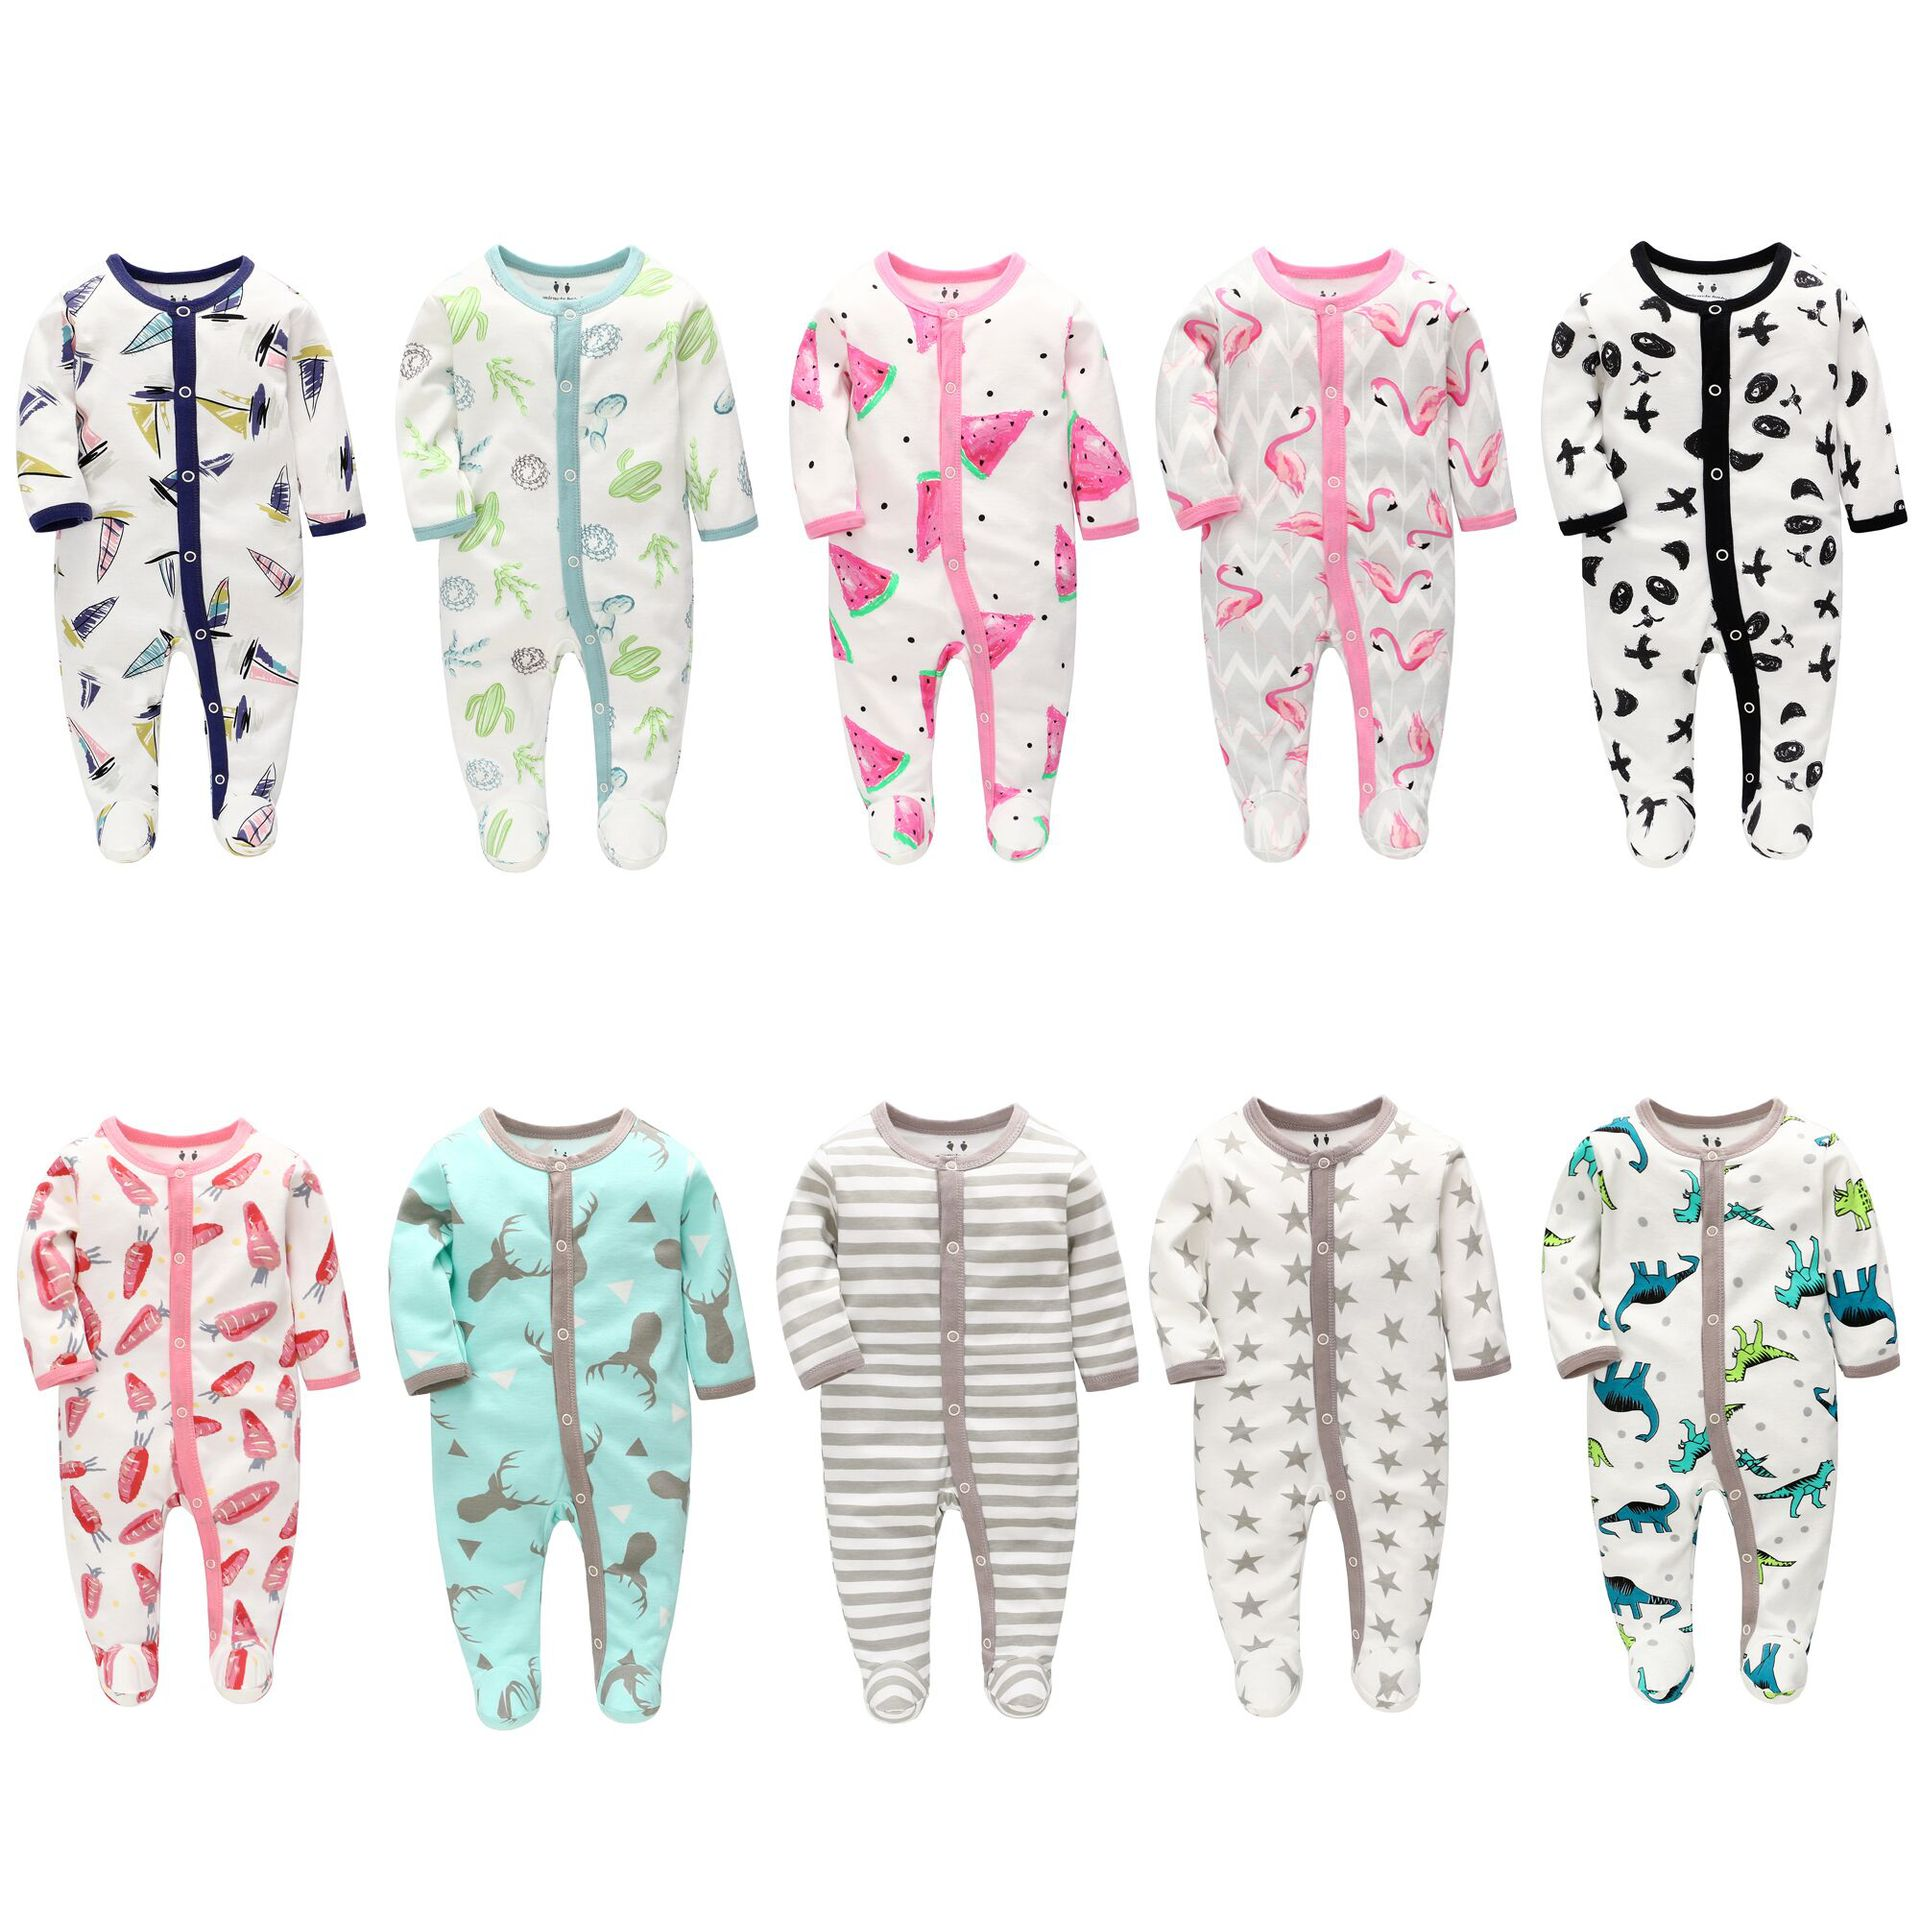 2 Sets/Lot Baby Clothes Boys Rompers Pajamas Overalls Toddler Girls  Newborn Infant Jumpsuit Baby Romper Climb Clothin 0-6 Month